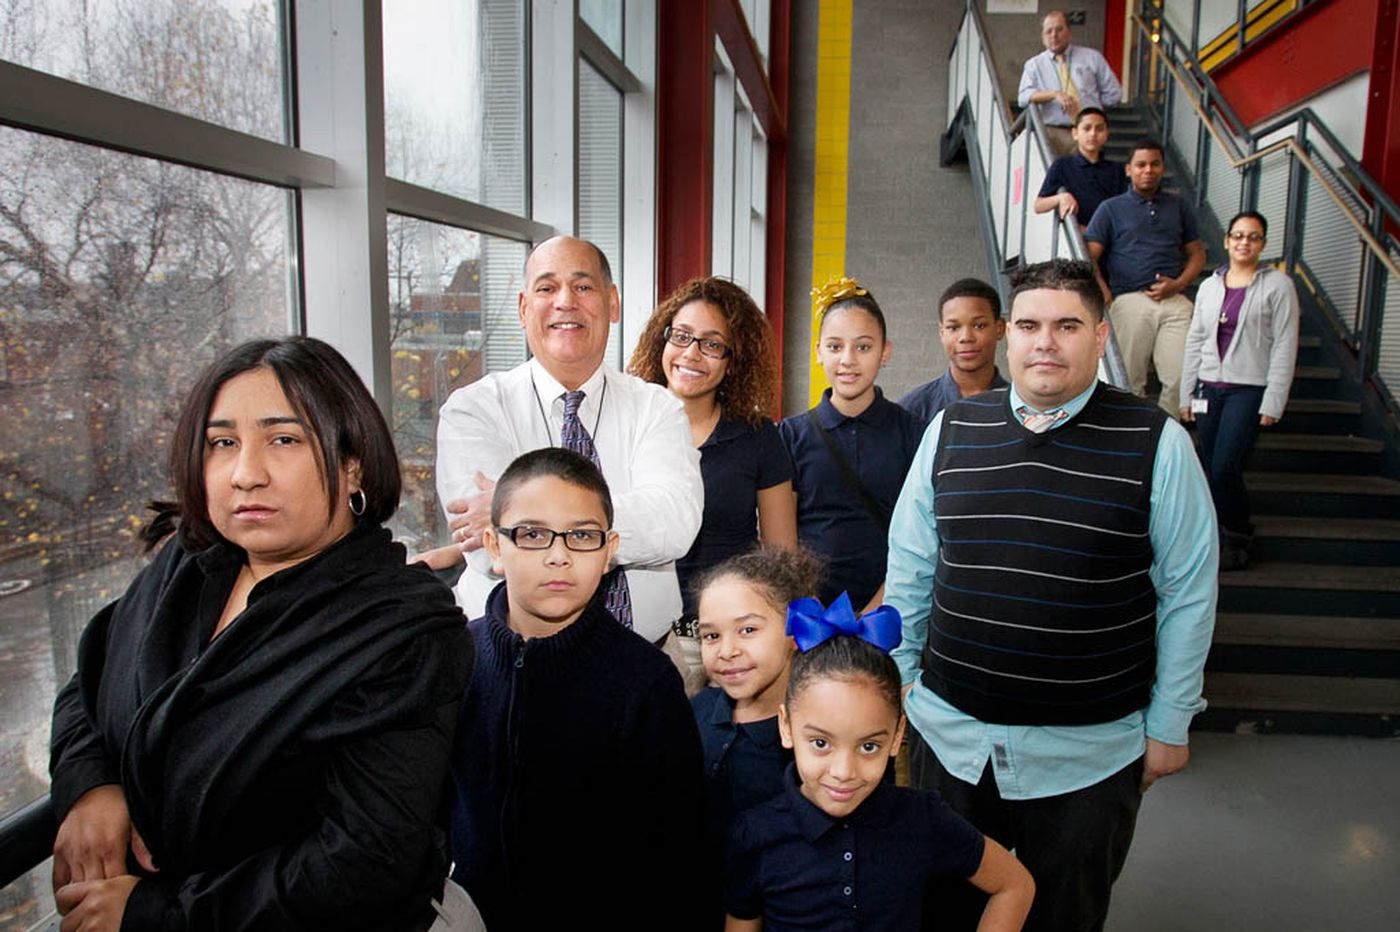 Ubiñas: Locked down in a cycle of violence